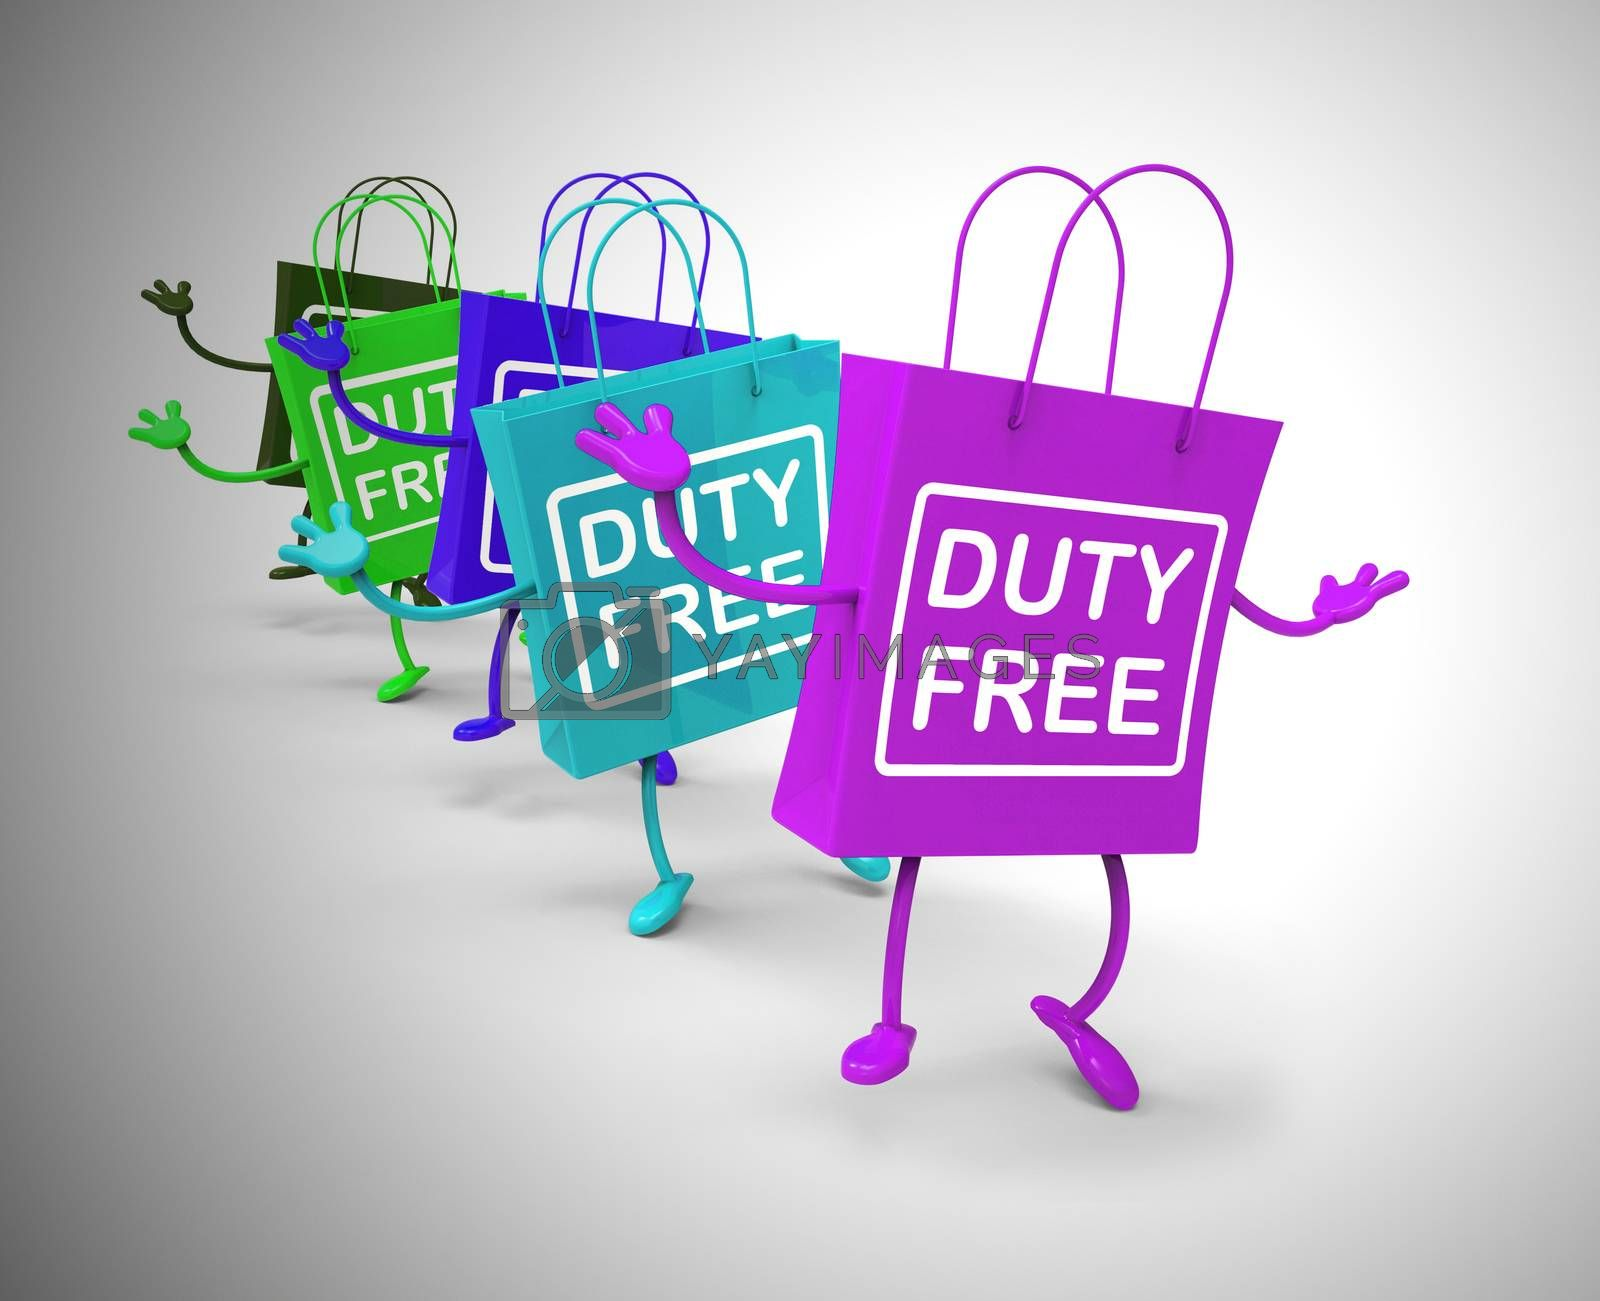 Duty-free concept icon means no customs payable. A product with no tax like airport shopping - 3d illustration